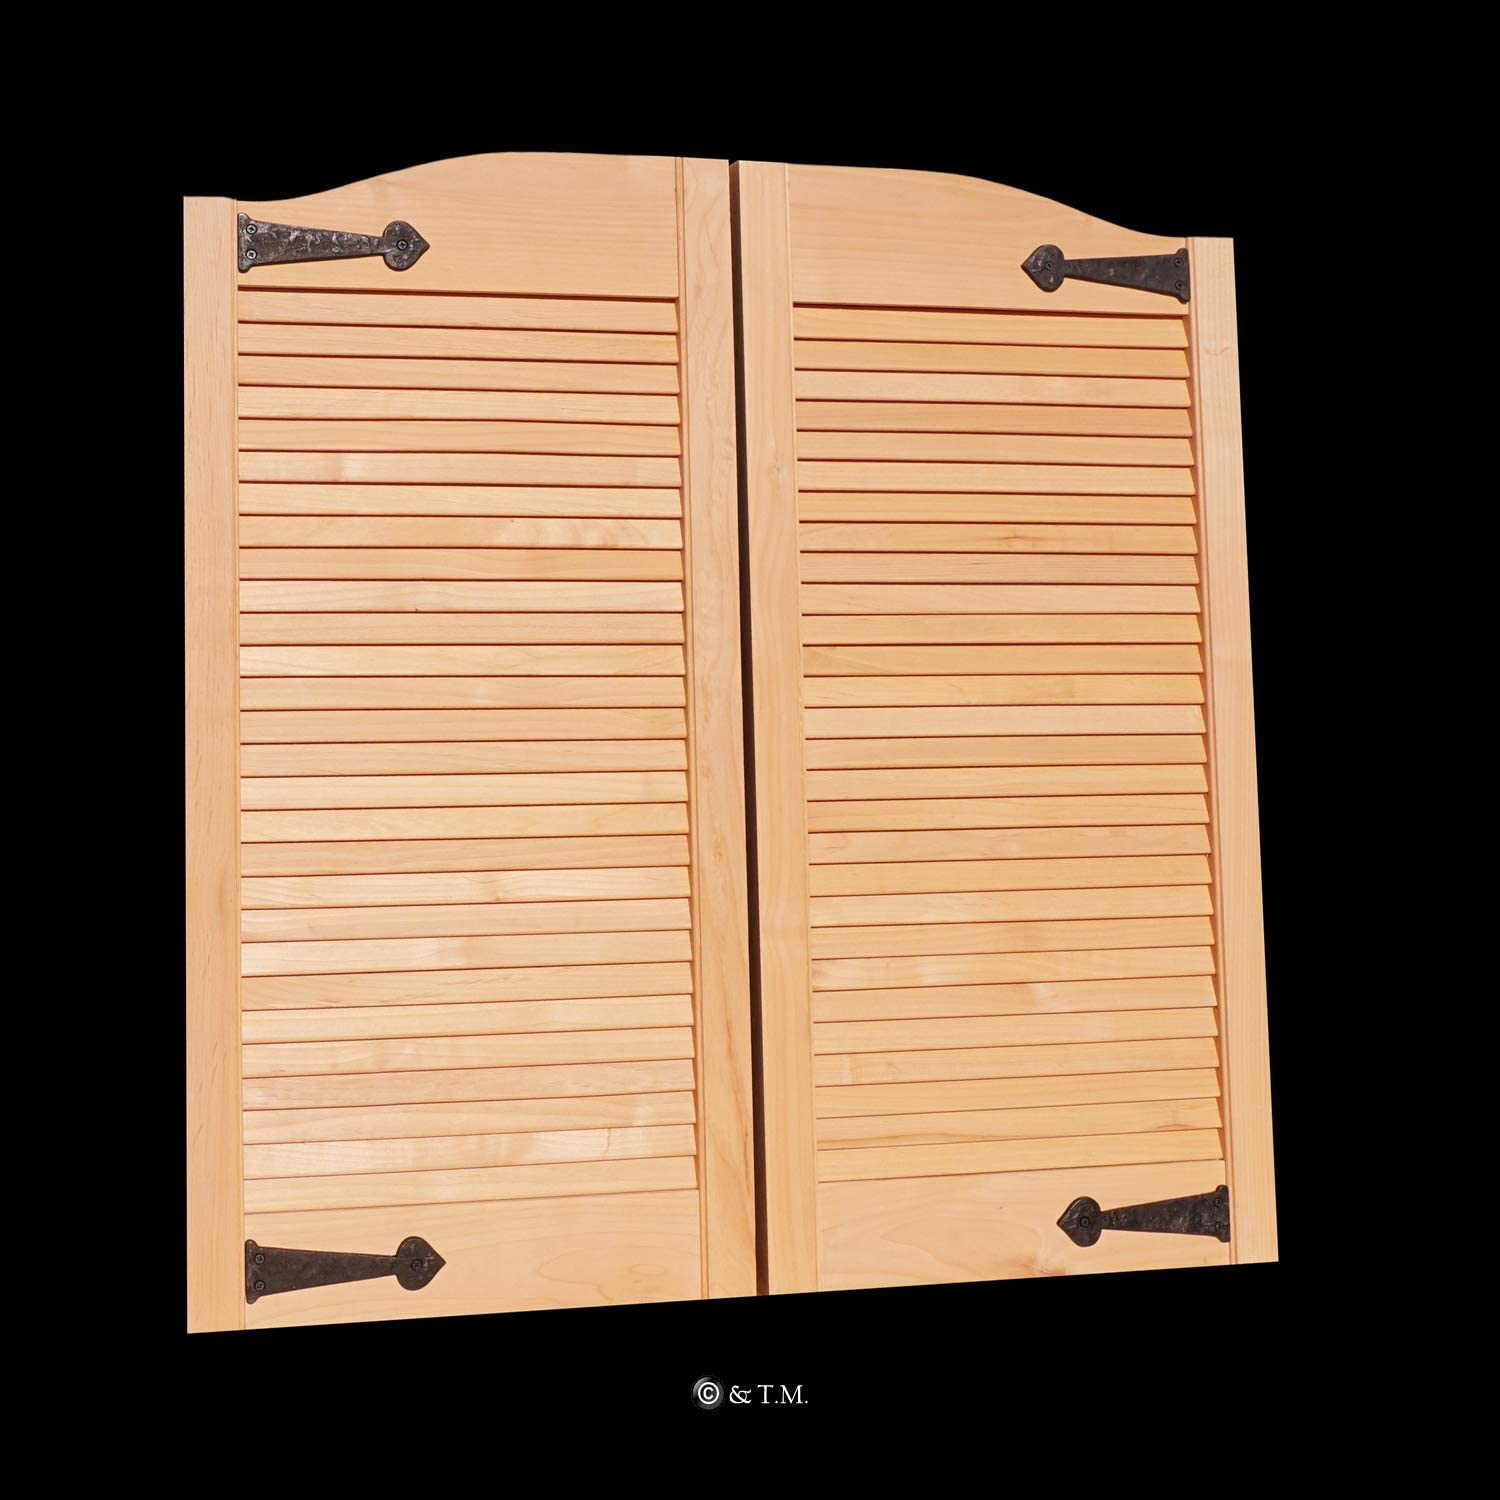 Hinges Included Custom Iron Accents Hardwood from Managed Forestry Prefit for 30W Finished Opening Louvered Alder Wood Cafe Doors Cafe Doors by Cafe Doors Emporium Saloon Swinging Door